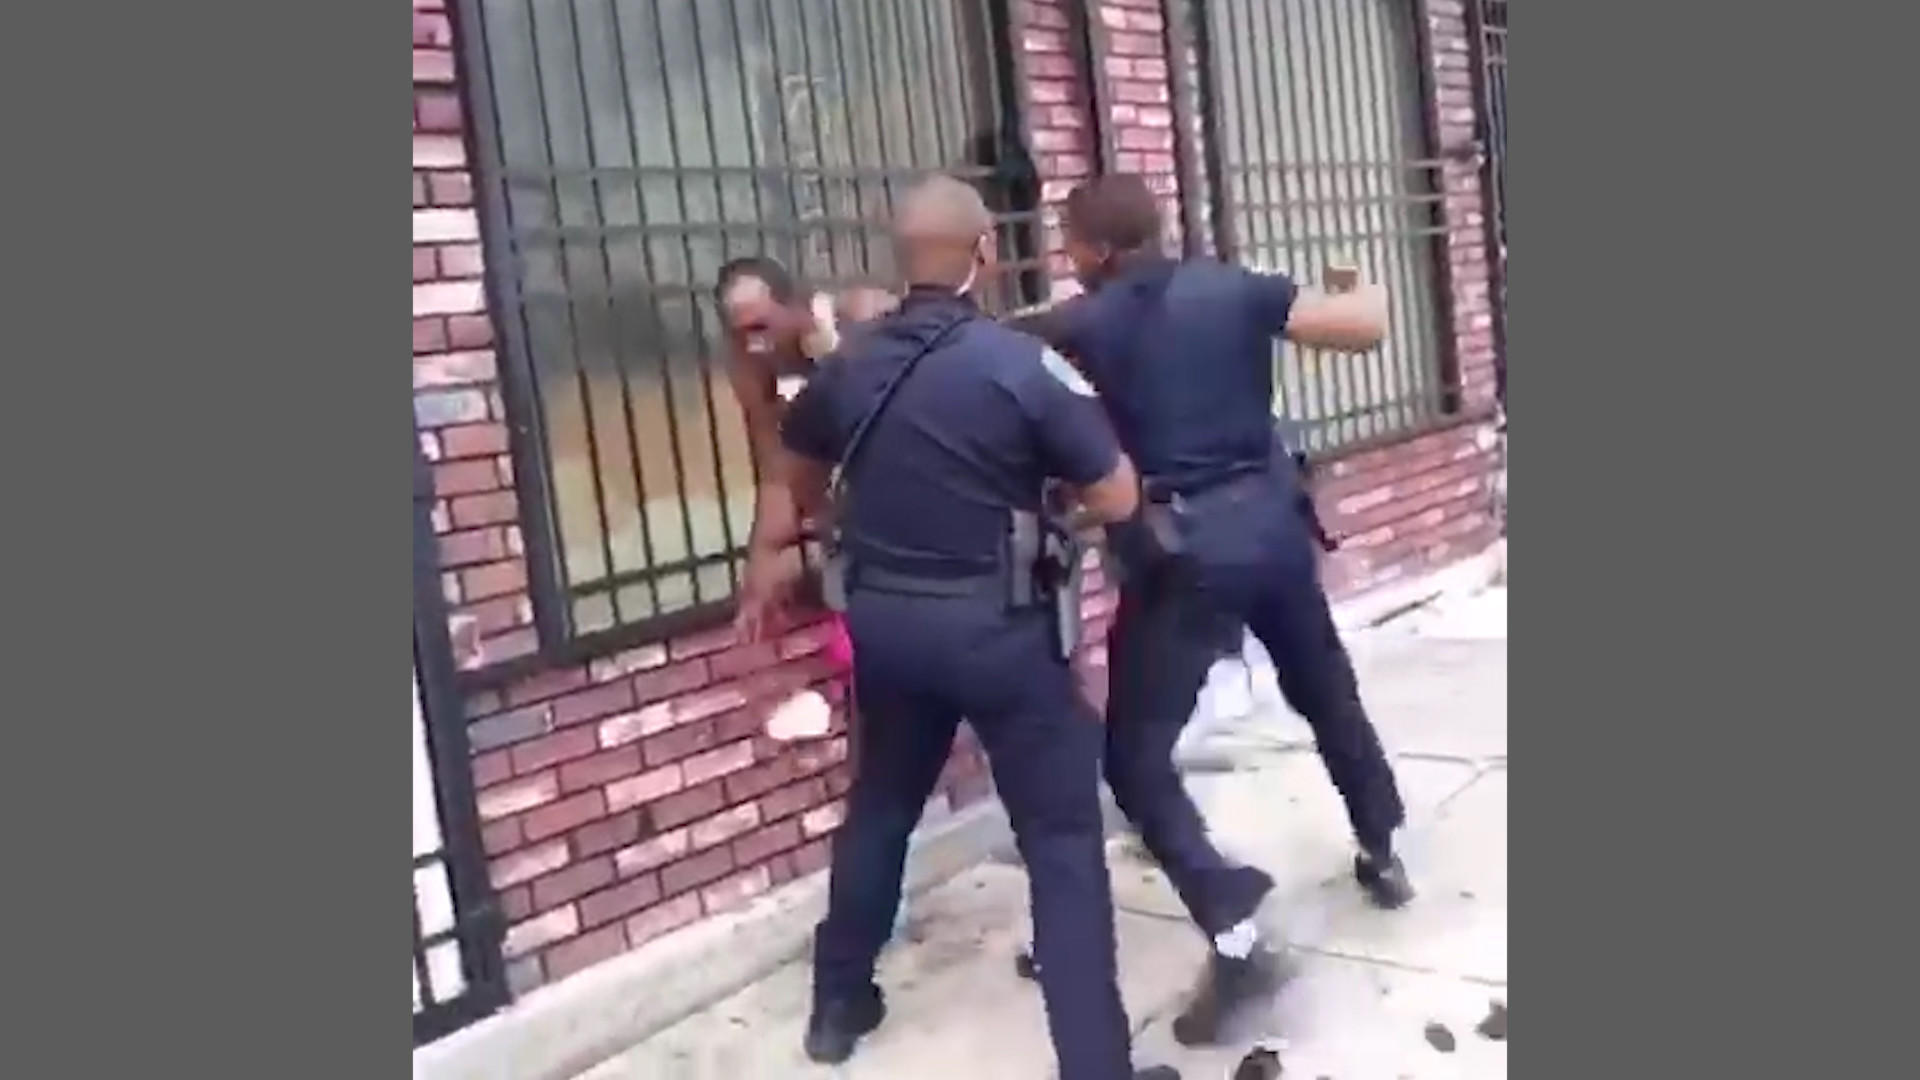 Baltimore police officer who was shown on video beating man is charged with  assault and turns himself in